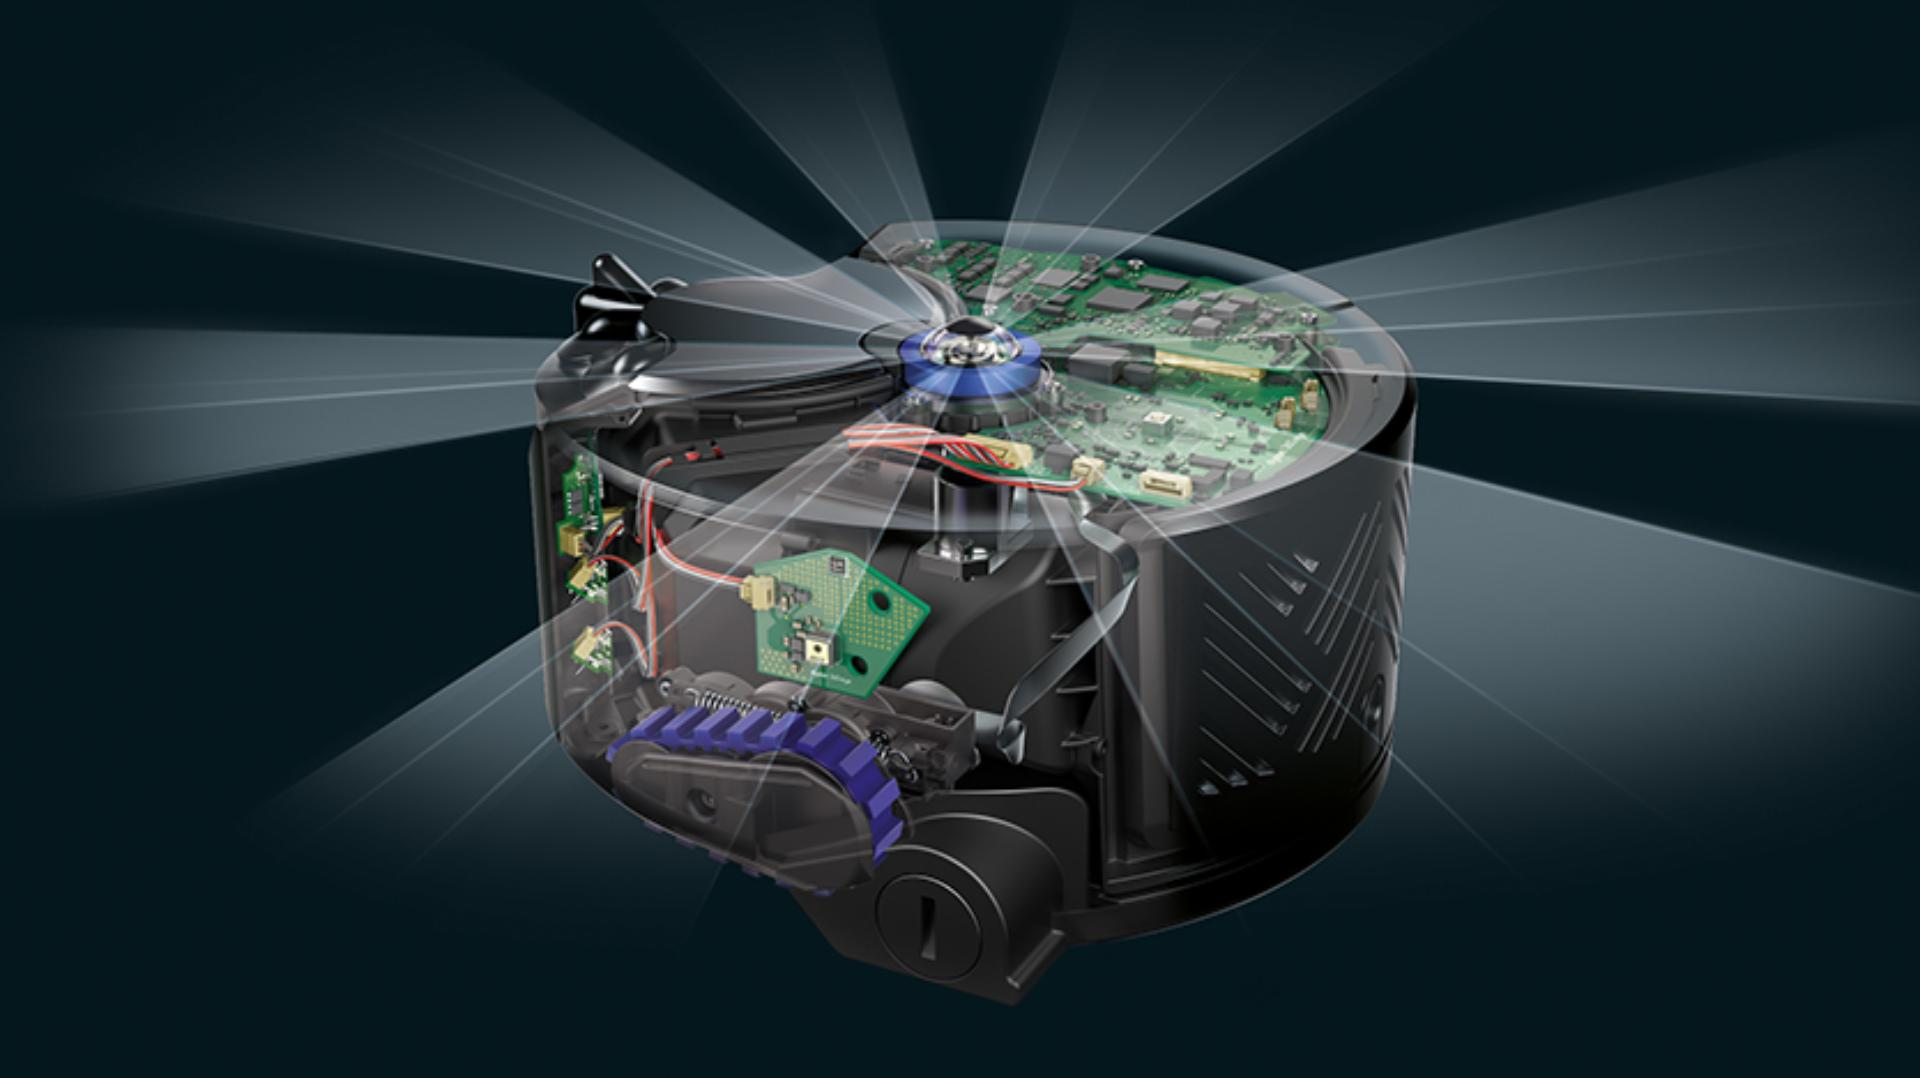 Side view of Dyson 360 Eye robot vacuum